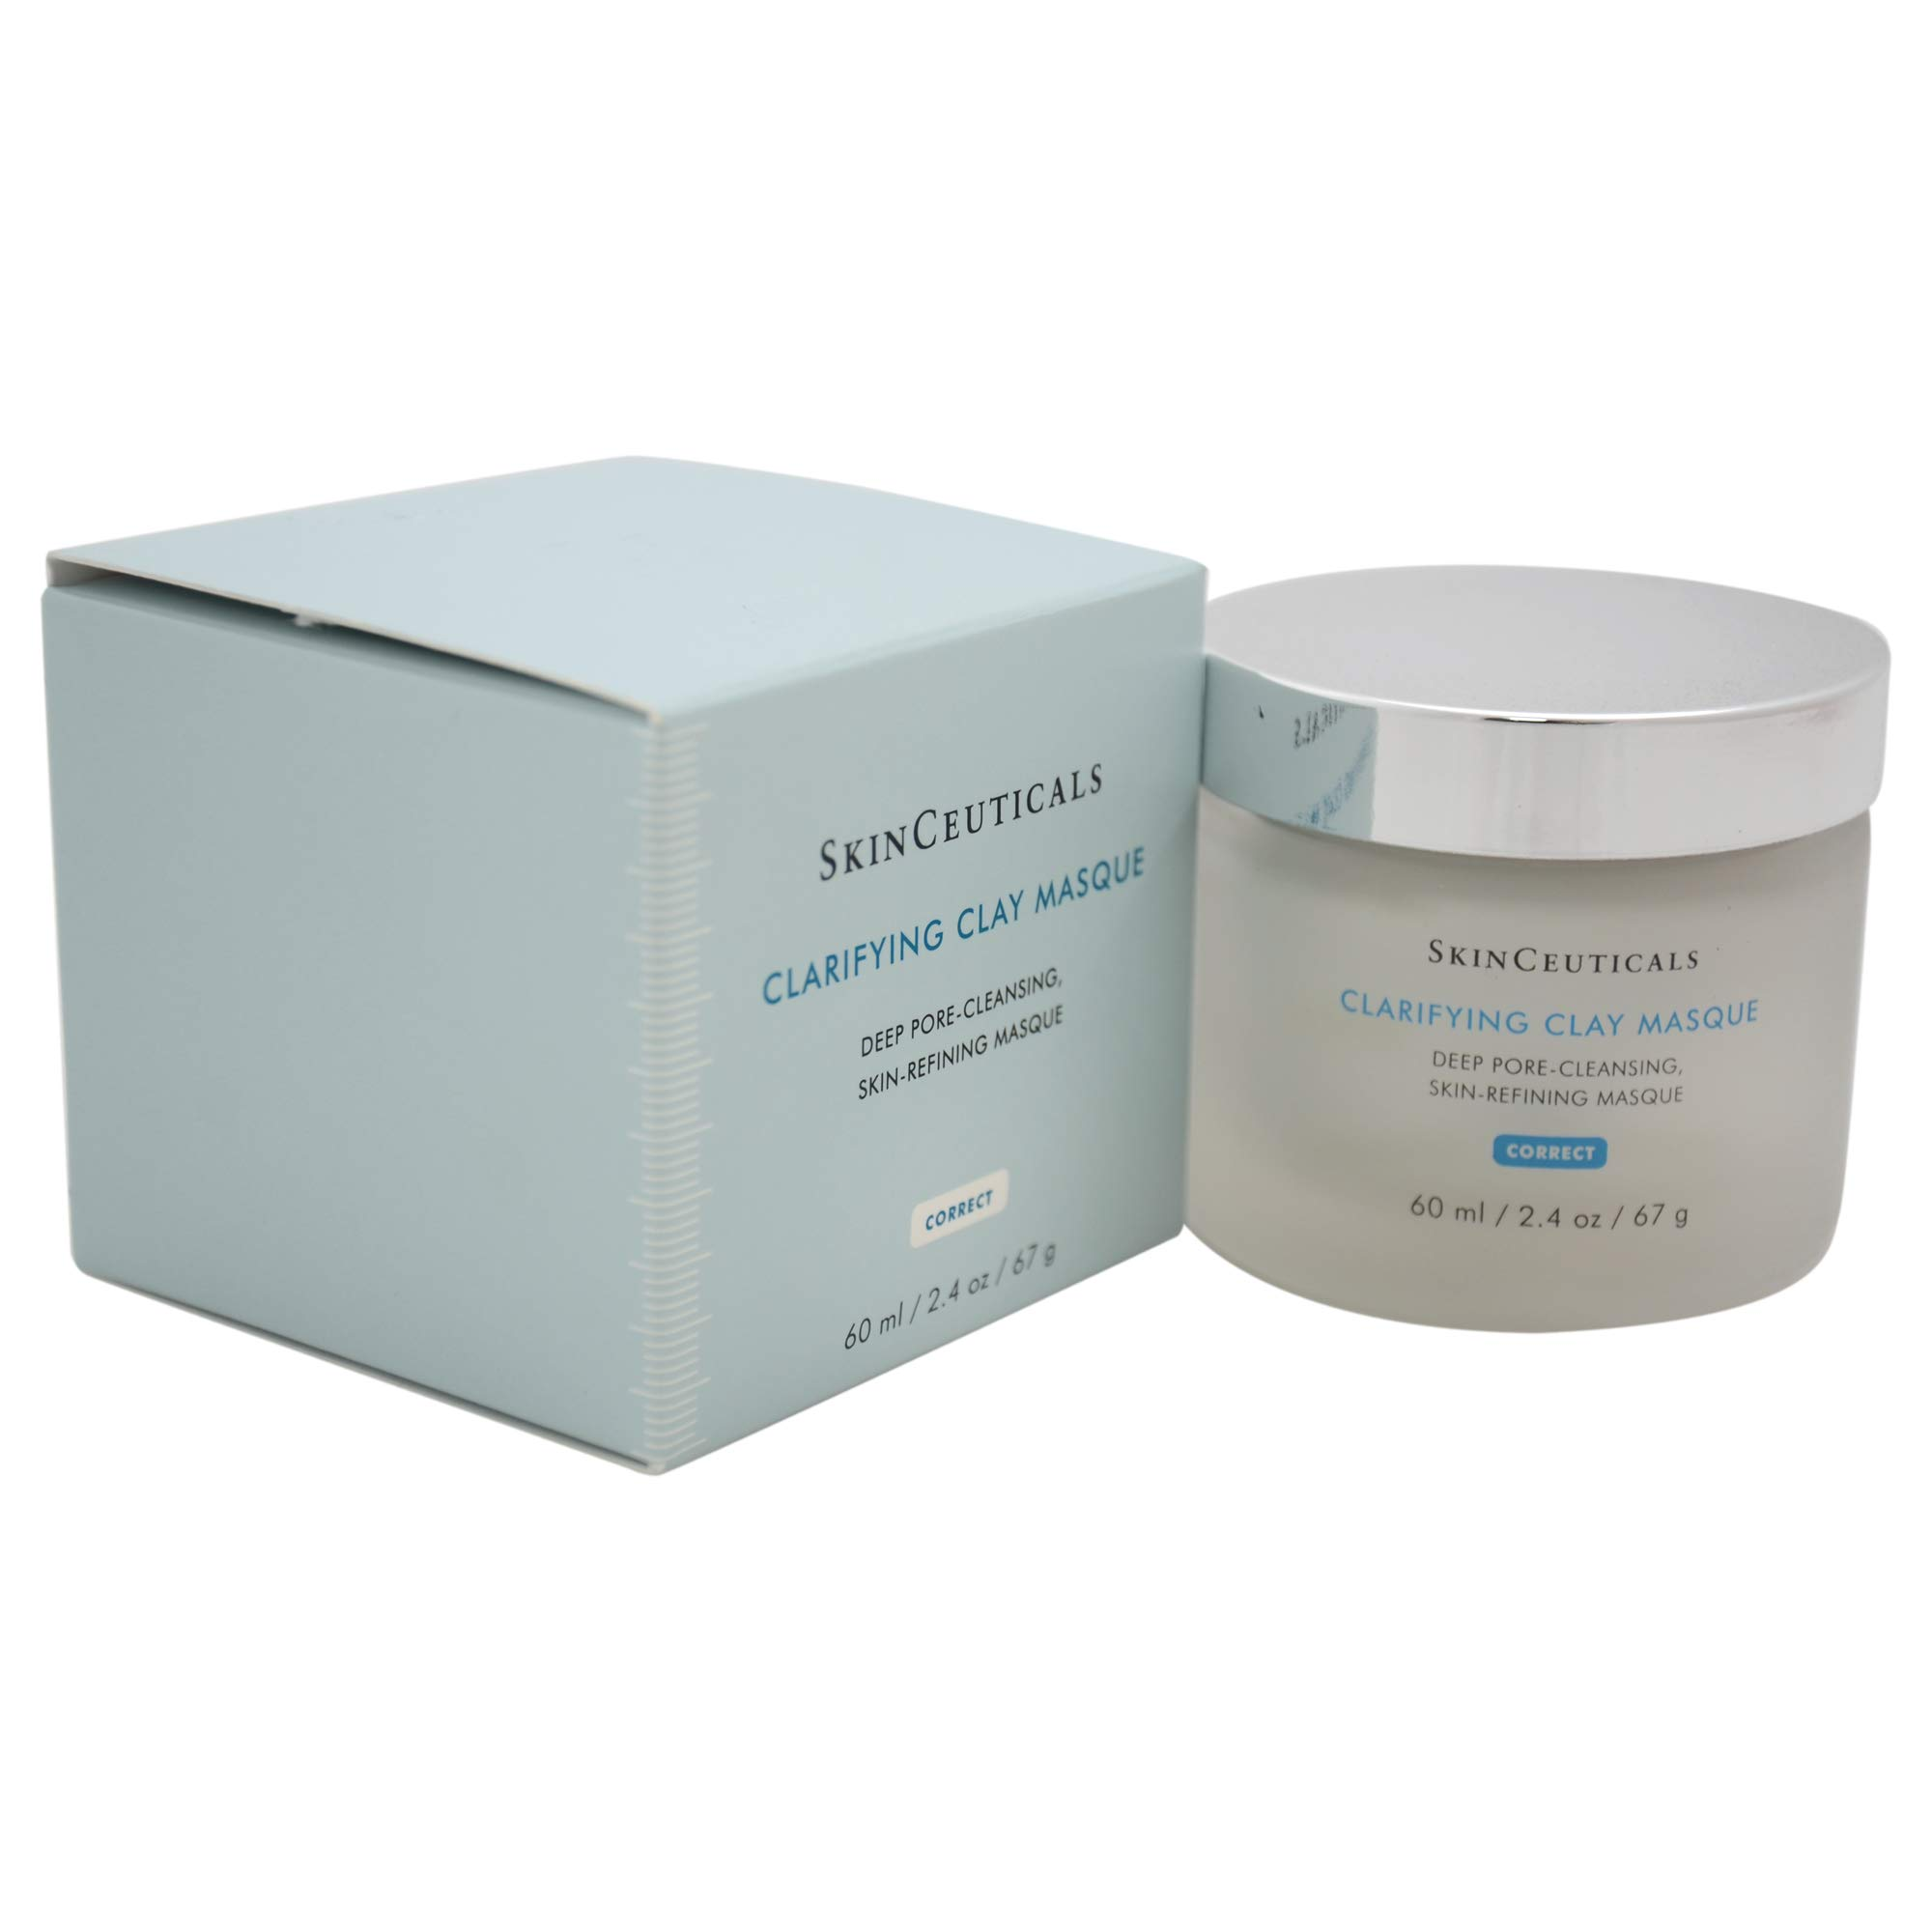 Skinceuticals  Clarifying Clay Masque Deep Pore-cleansing Skin-refining Masque, 2.4-Ounce Jar